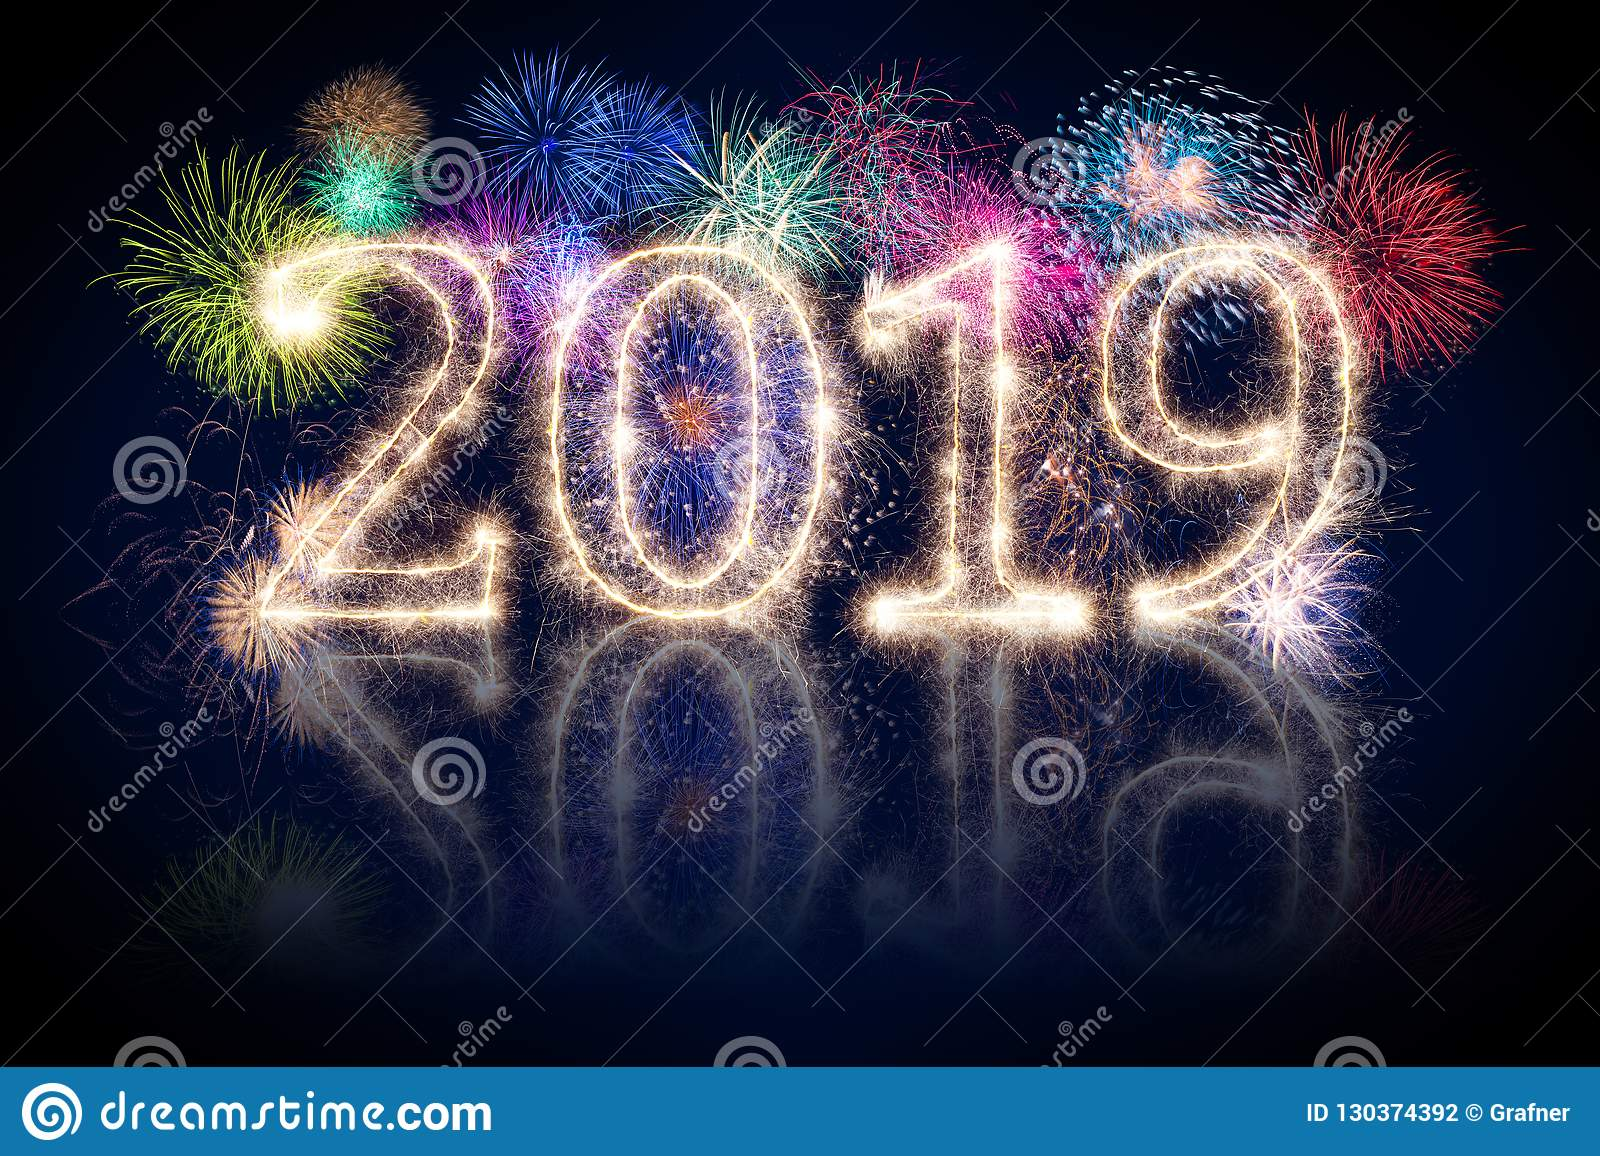 colorful fireworks display and bright sparkler pyrotechnic number 2019 happy new year